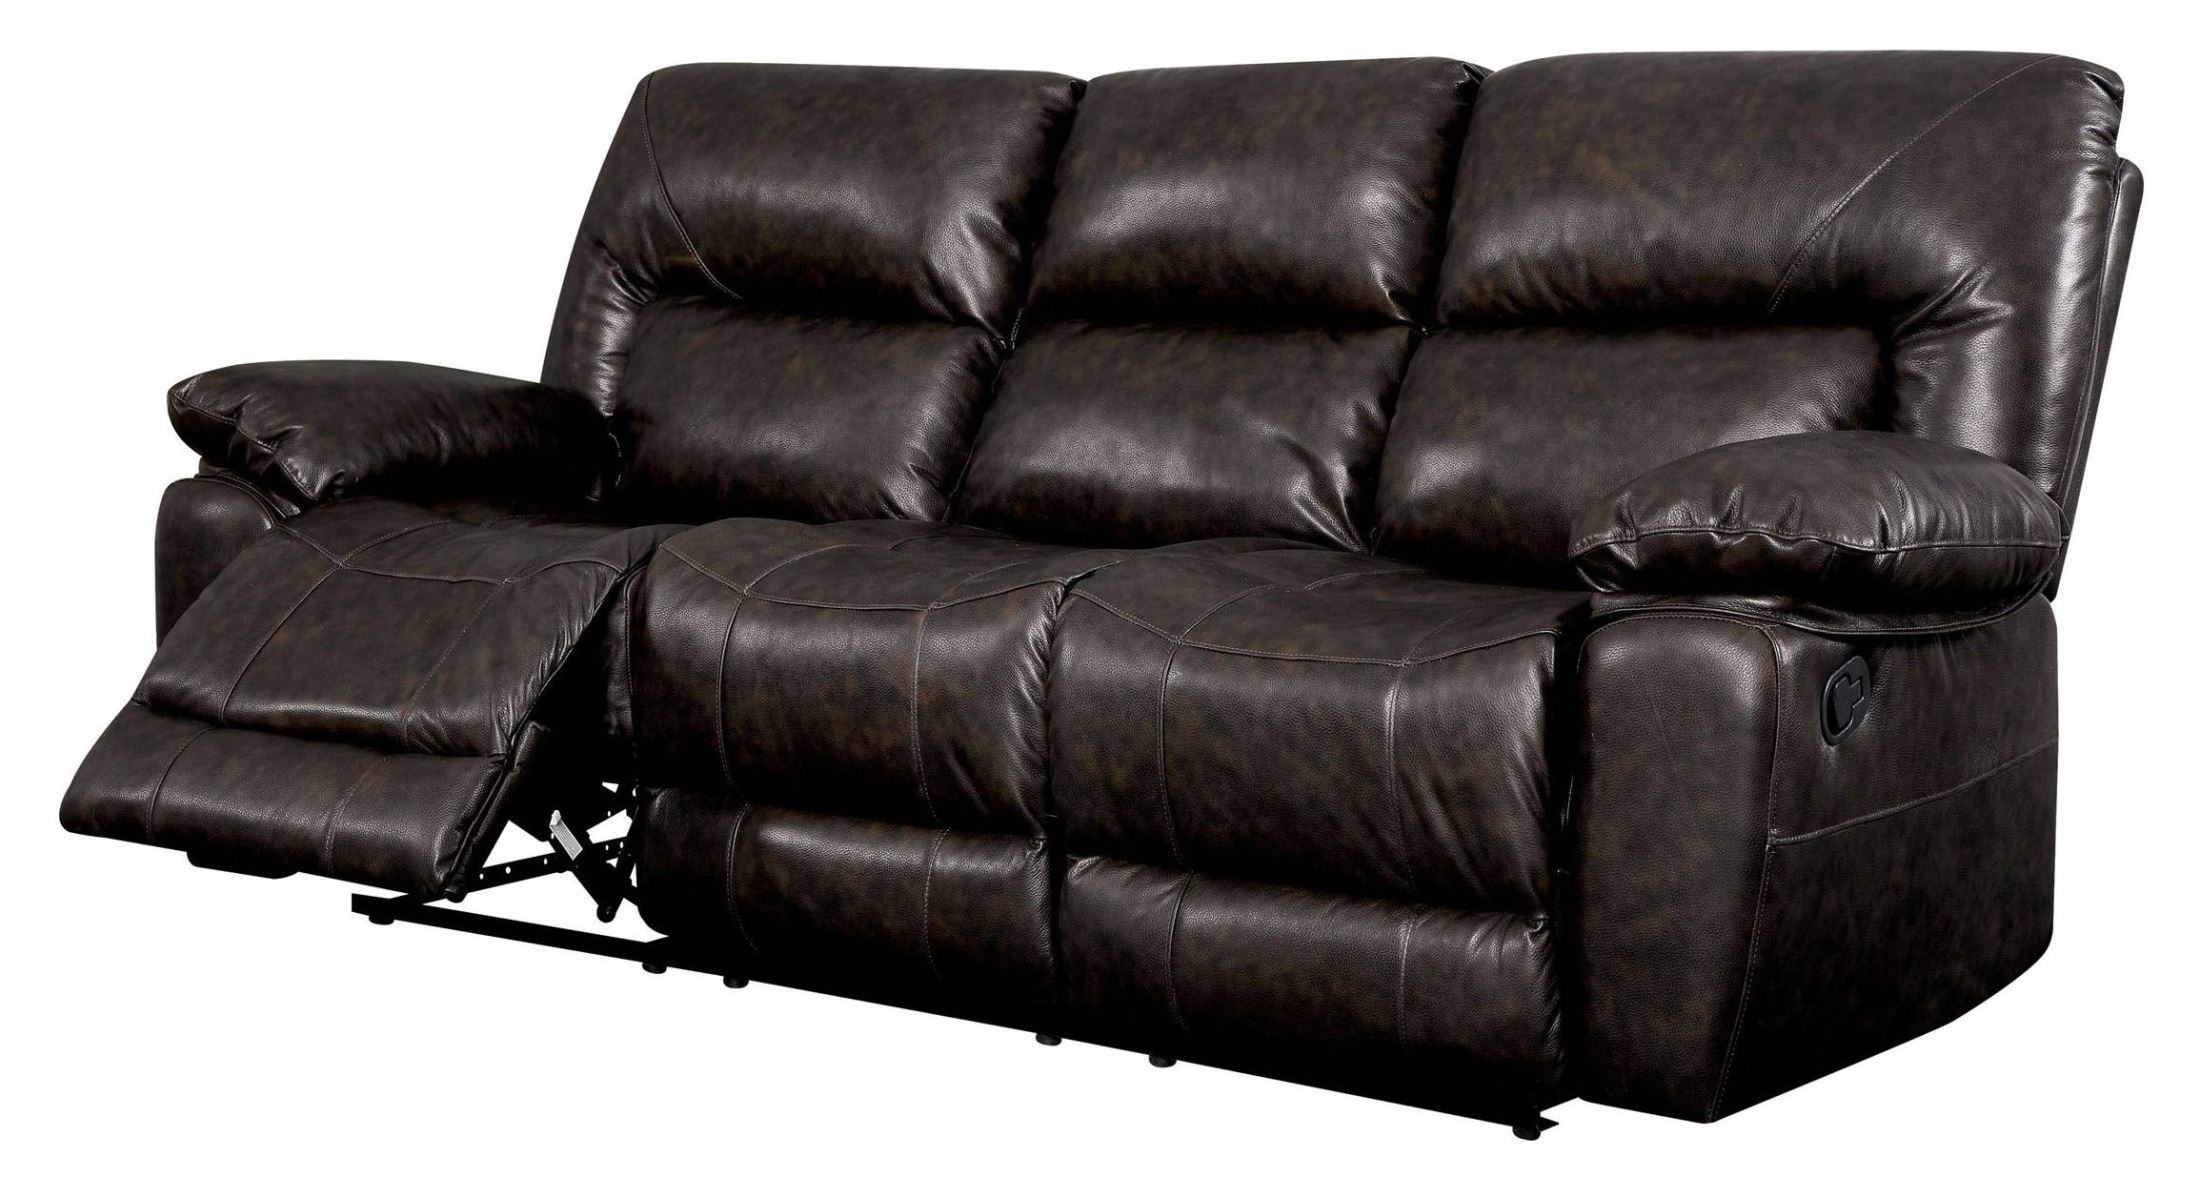 Stallion Top Grain Leather Match Reclining Sofa From